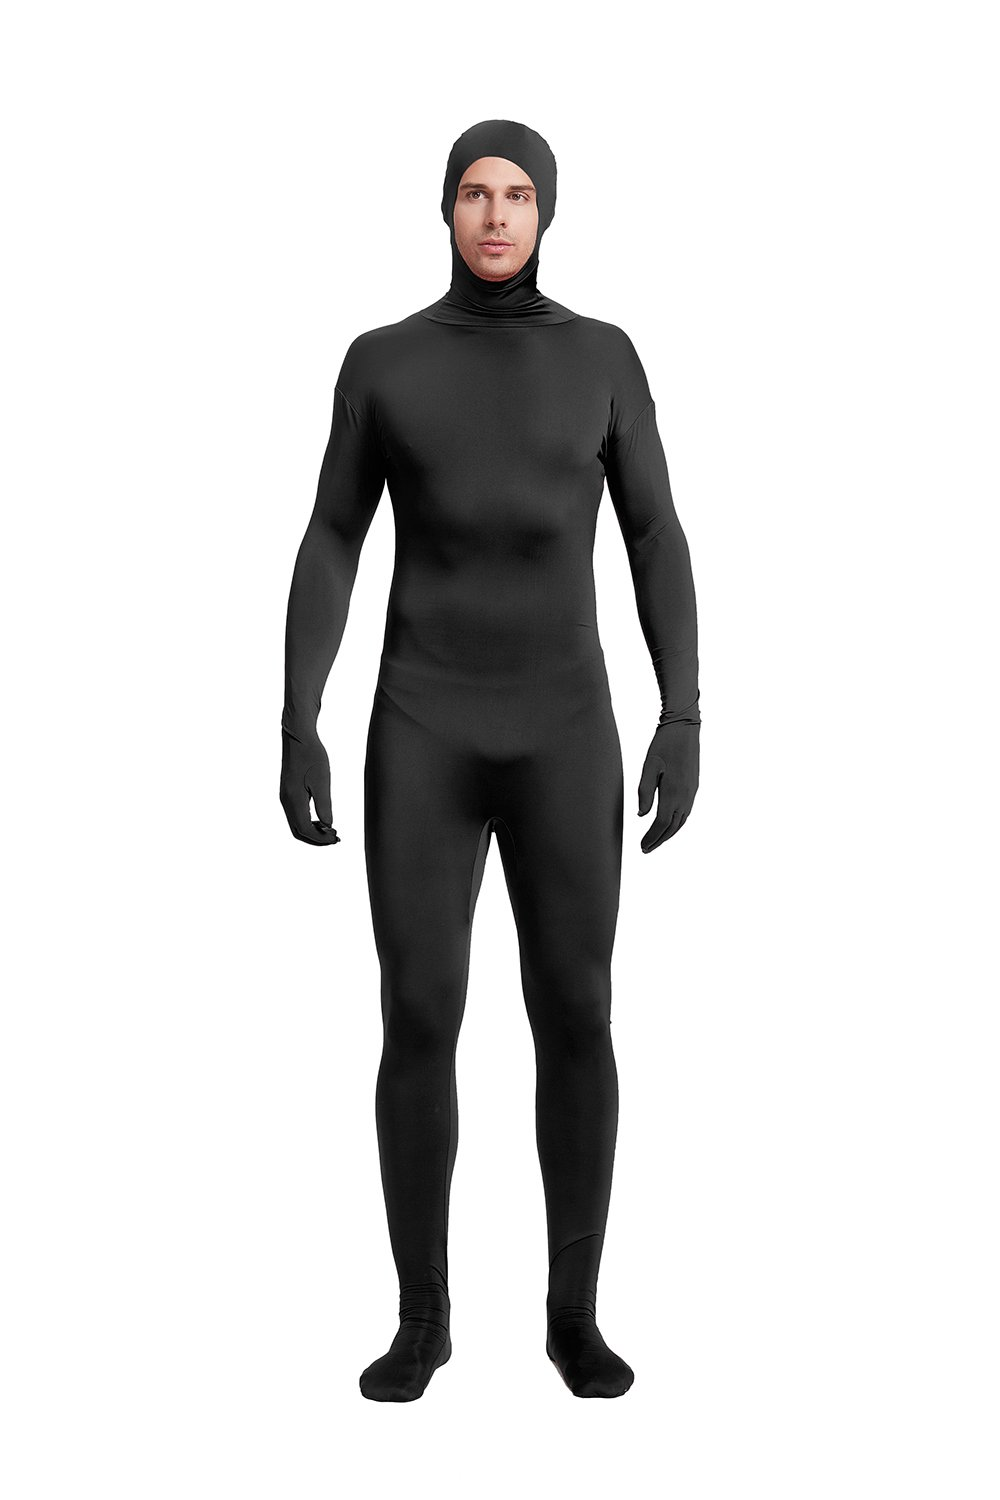 Full Bodysuit Unisex Adult Costume Open Face Lycra Spandex Zentai Unitard Body Suit 61IHUo9qMbL